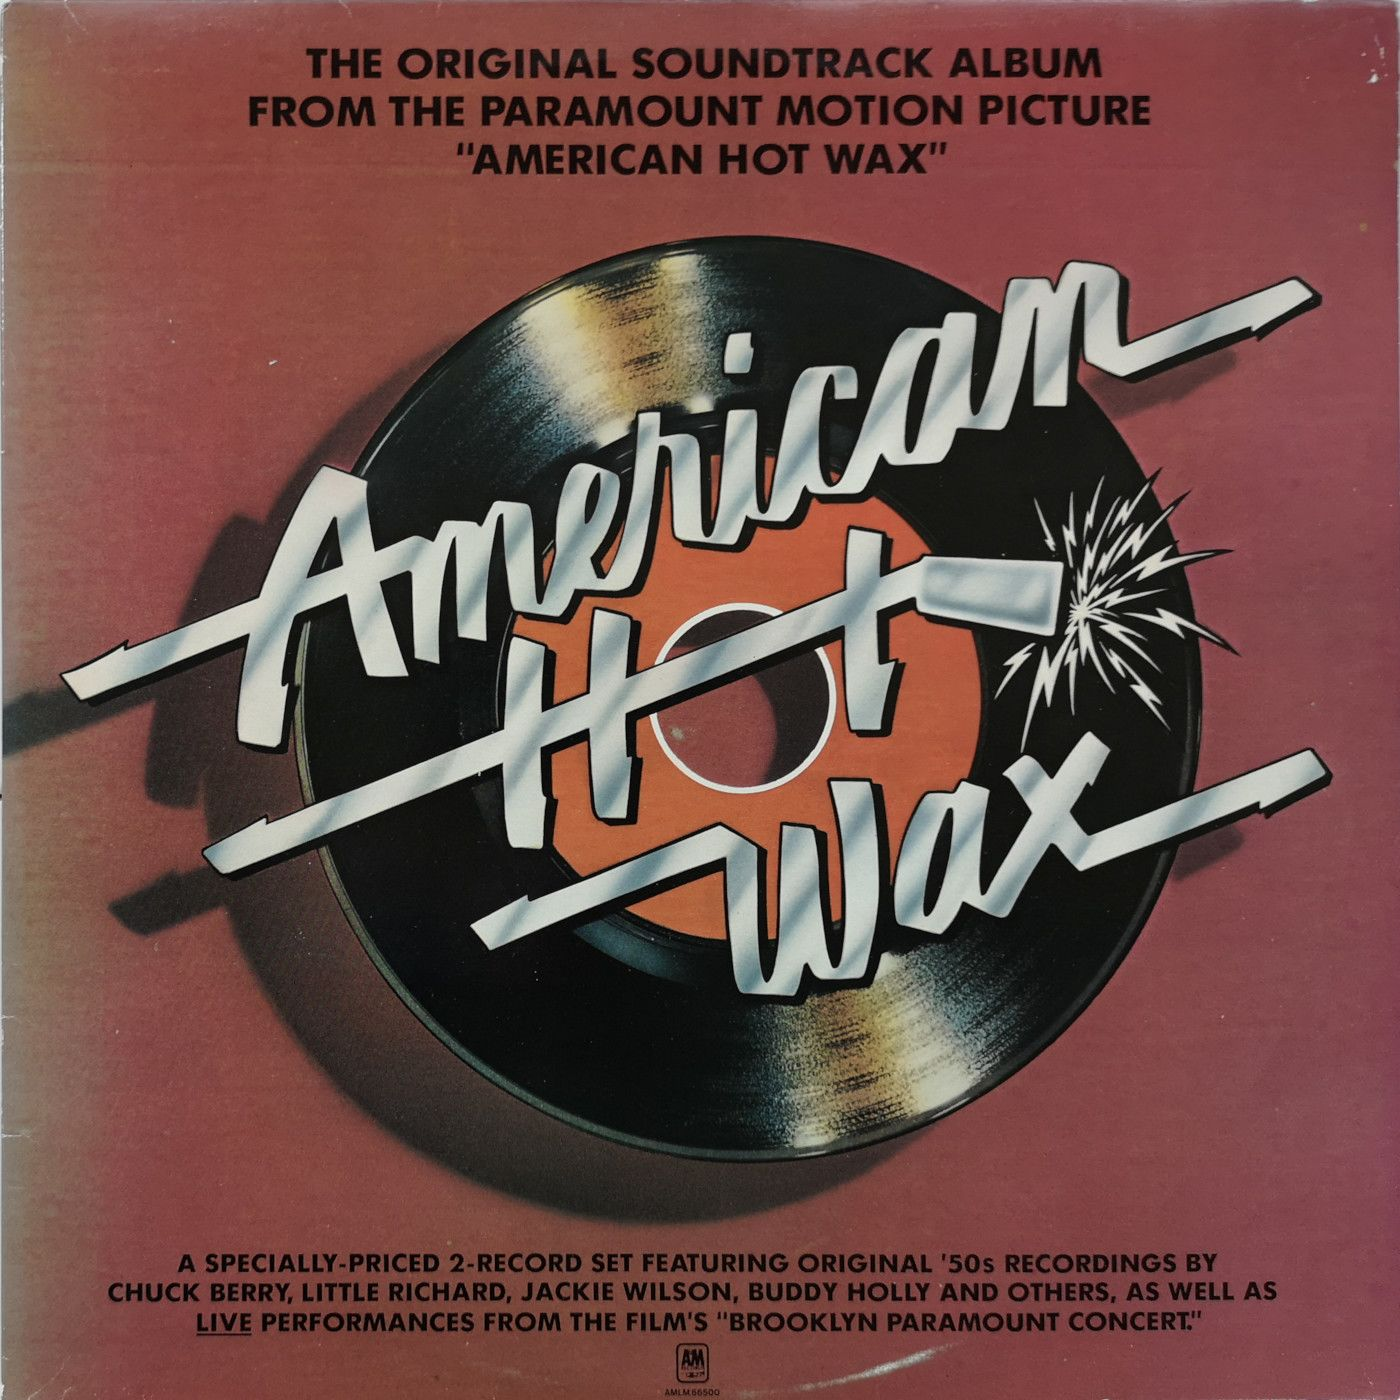 VVarious American Hot Wax - The Original Soundtrack Album From The Paramount Motion Picture LP undefined